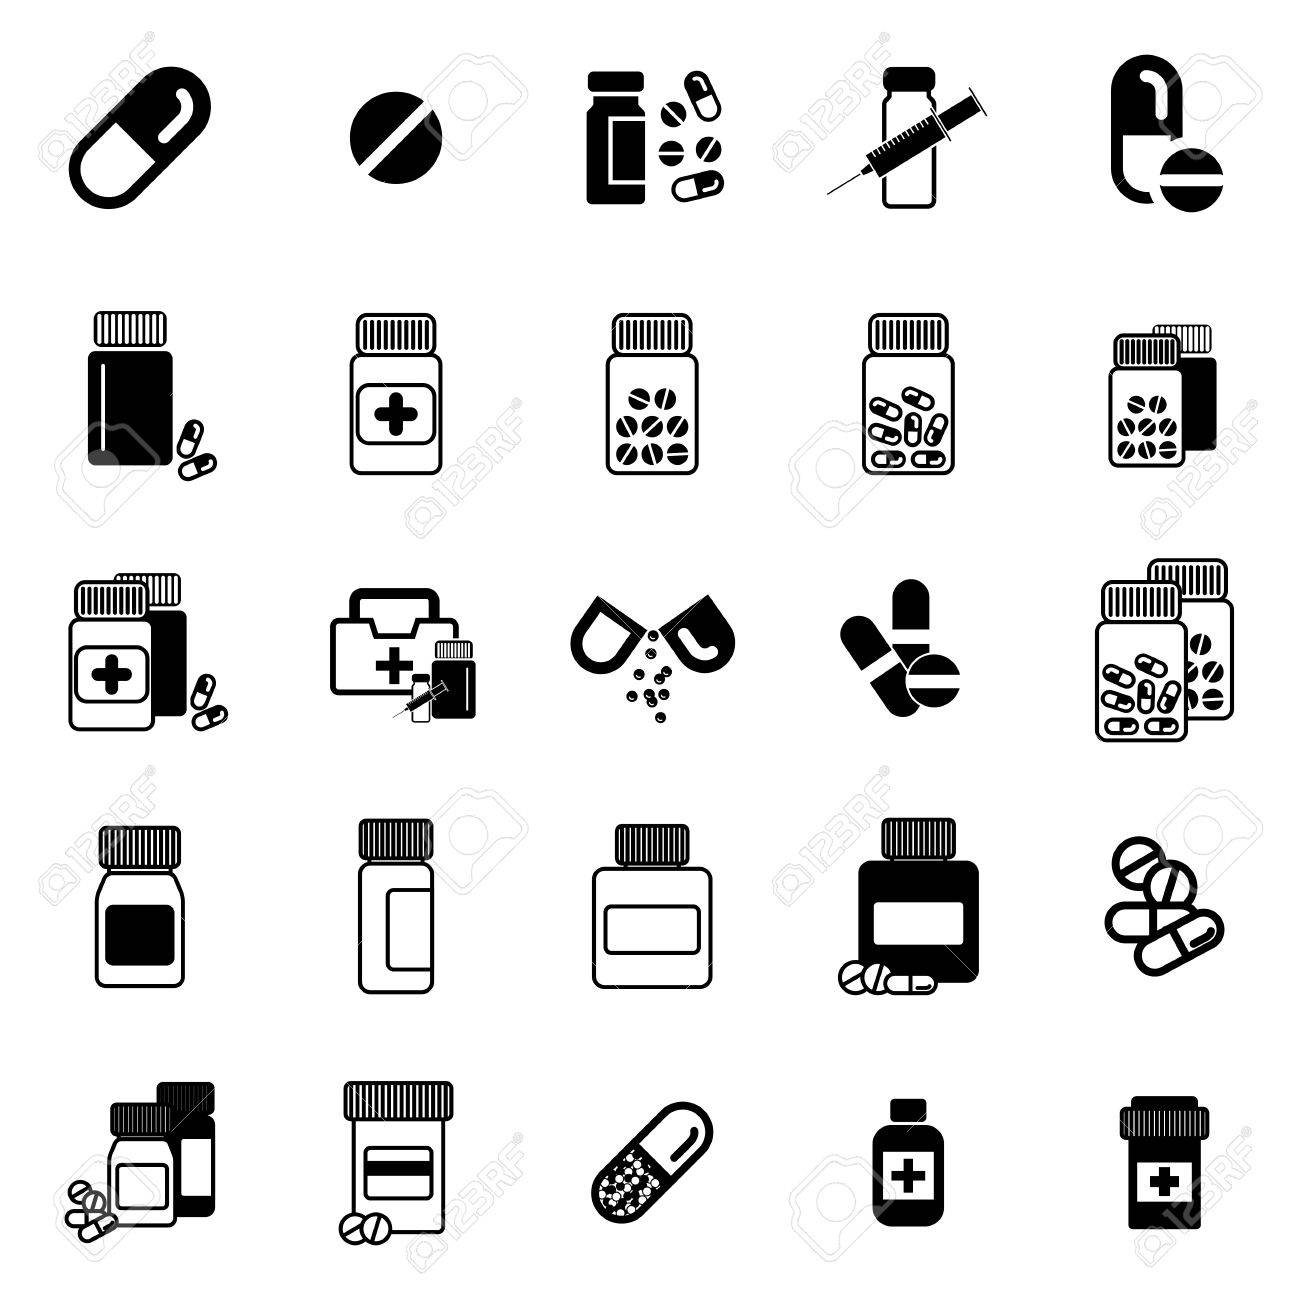 pill or drug vector icon set isolated pharmacy symbol collection royalty free cliparts vectors and stock illustration image 59623939 pill or drug vector icon set isolated pharmacy symbol collection